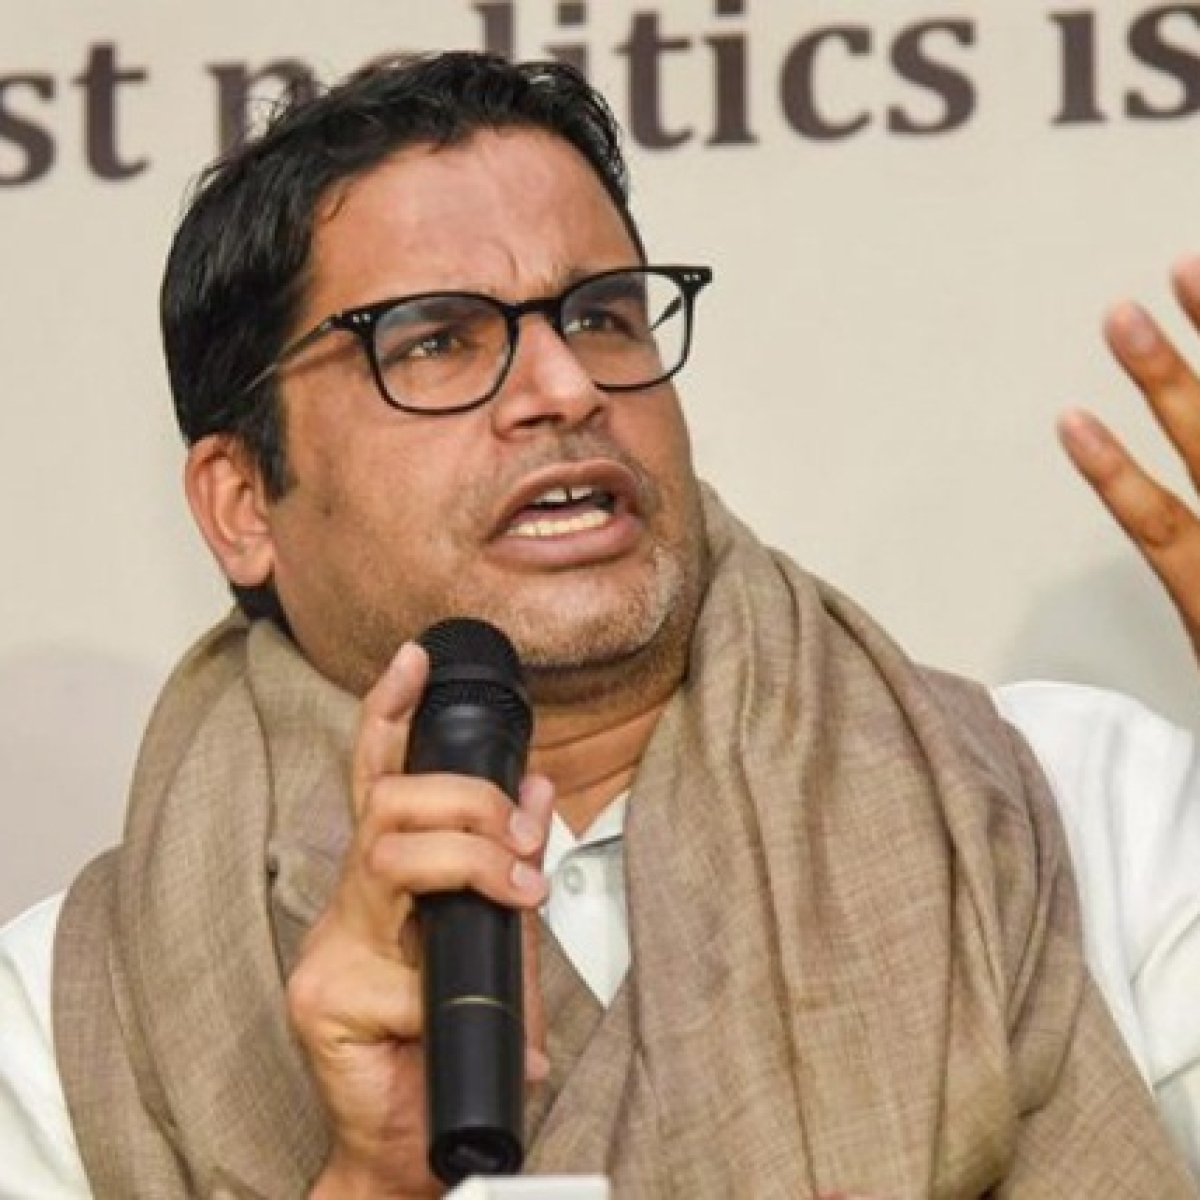 West Bengal Elections: Prashant Kishor's audio clip leaked, BJP claims 'sensing defeat Mamata Banerjee's poll strategist spoke truth'